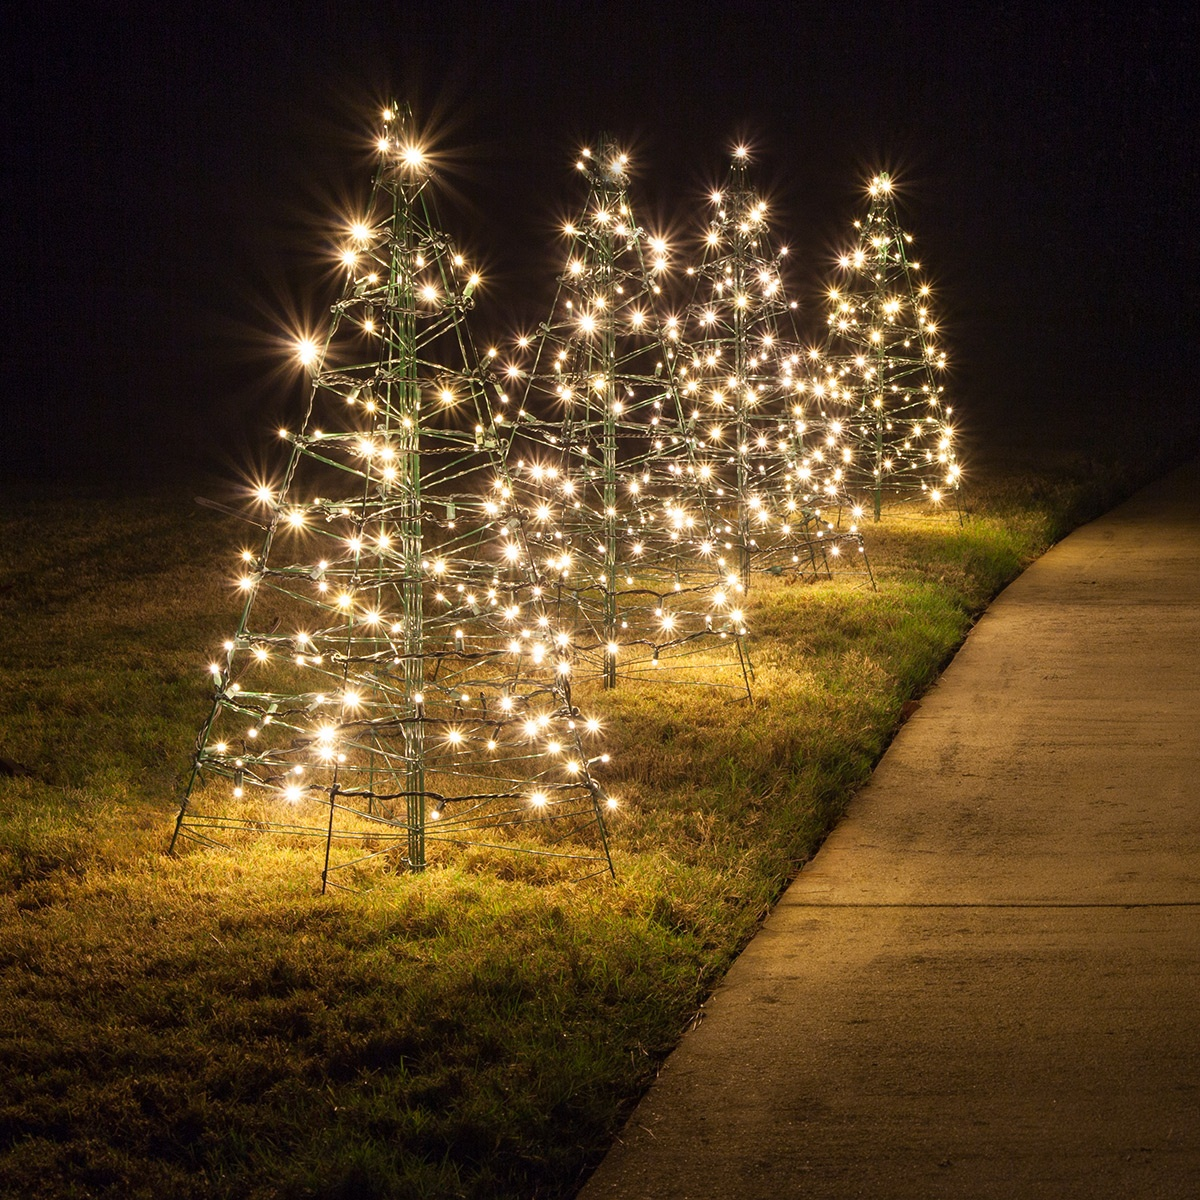 Lighted Warm White LED Outdoor Christmas Tree